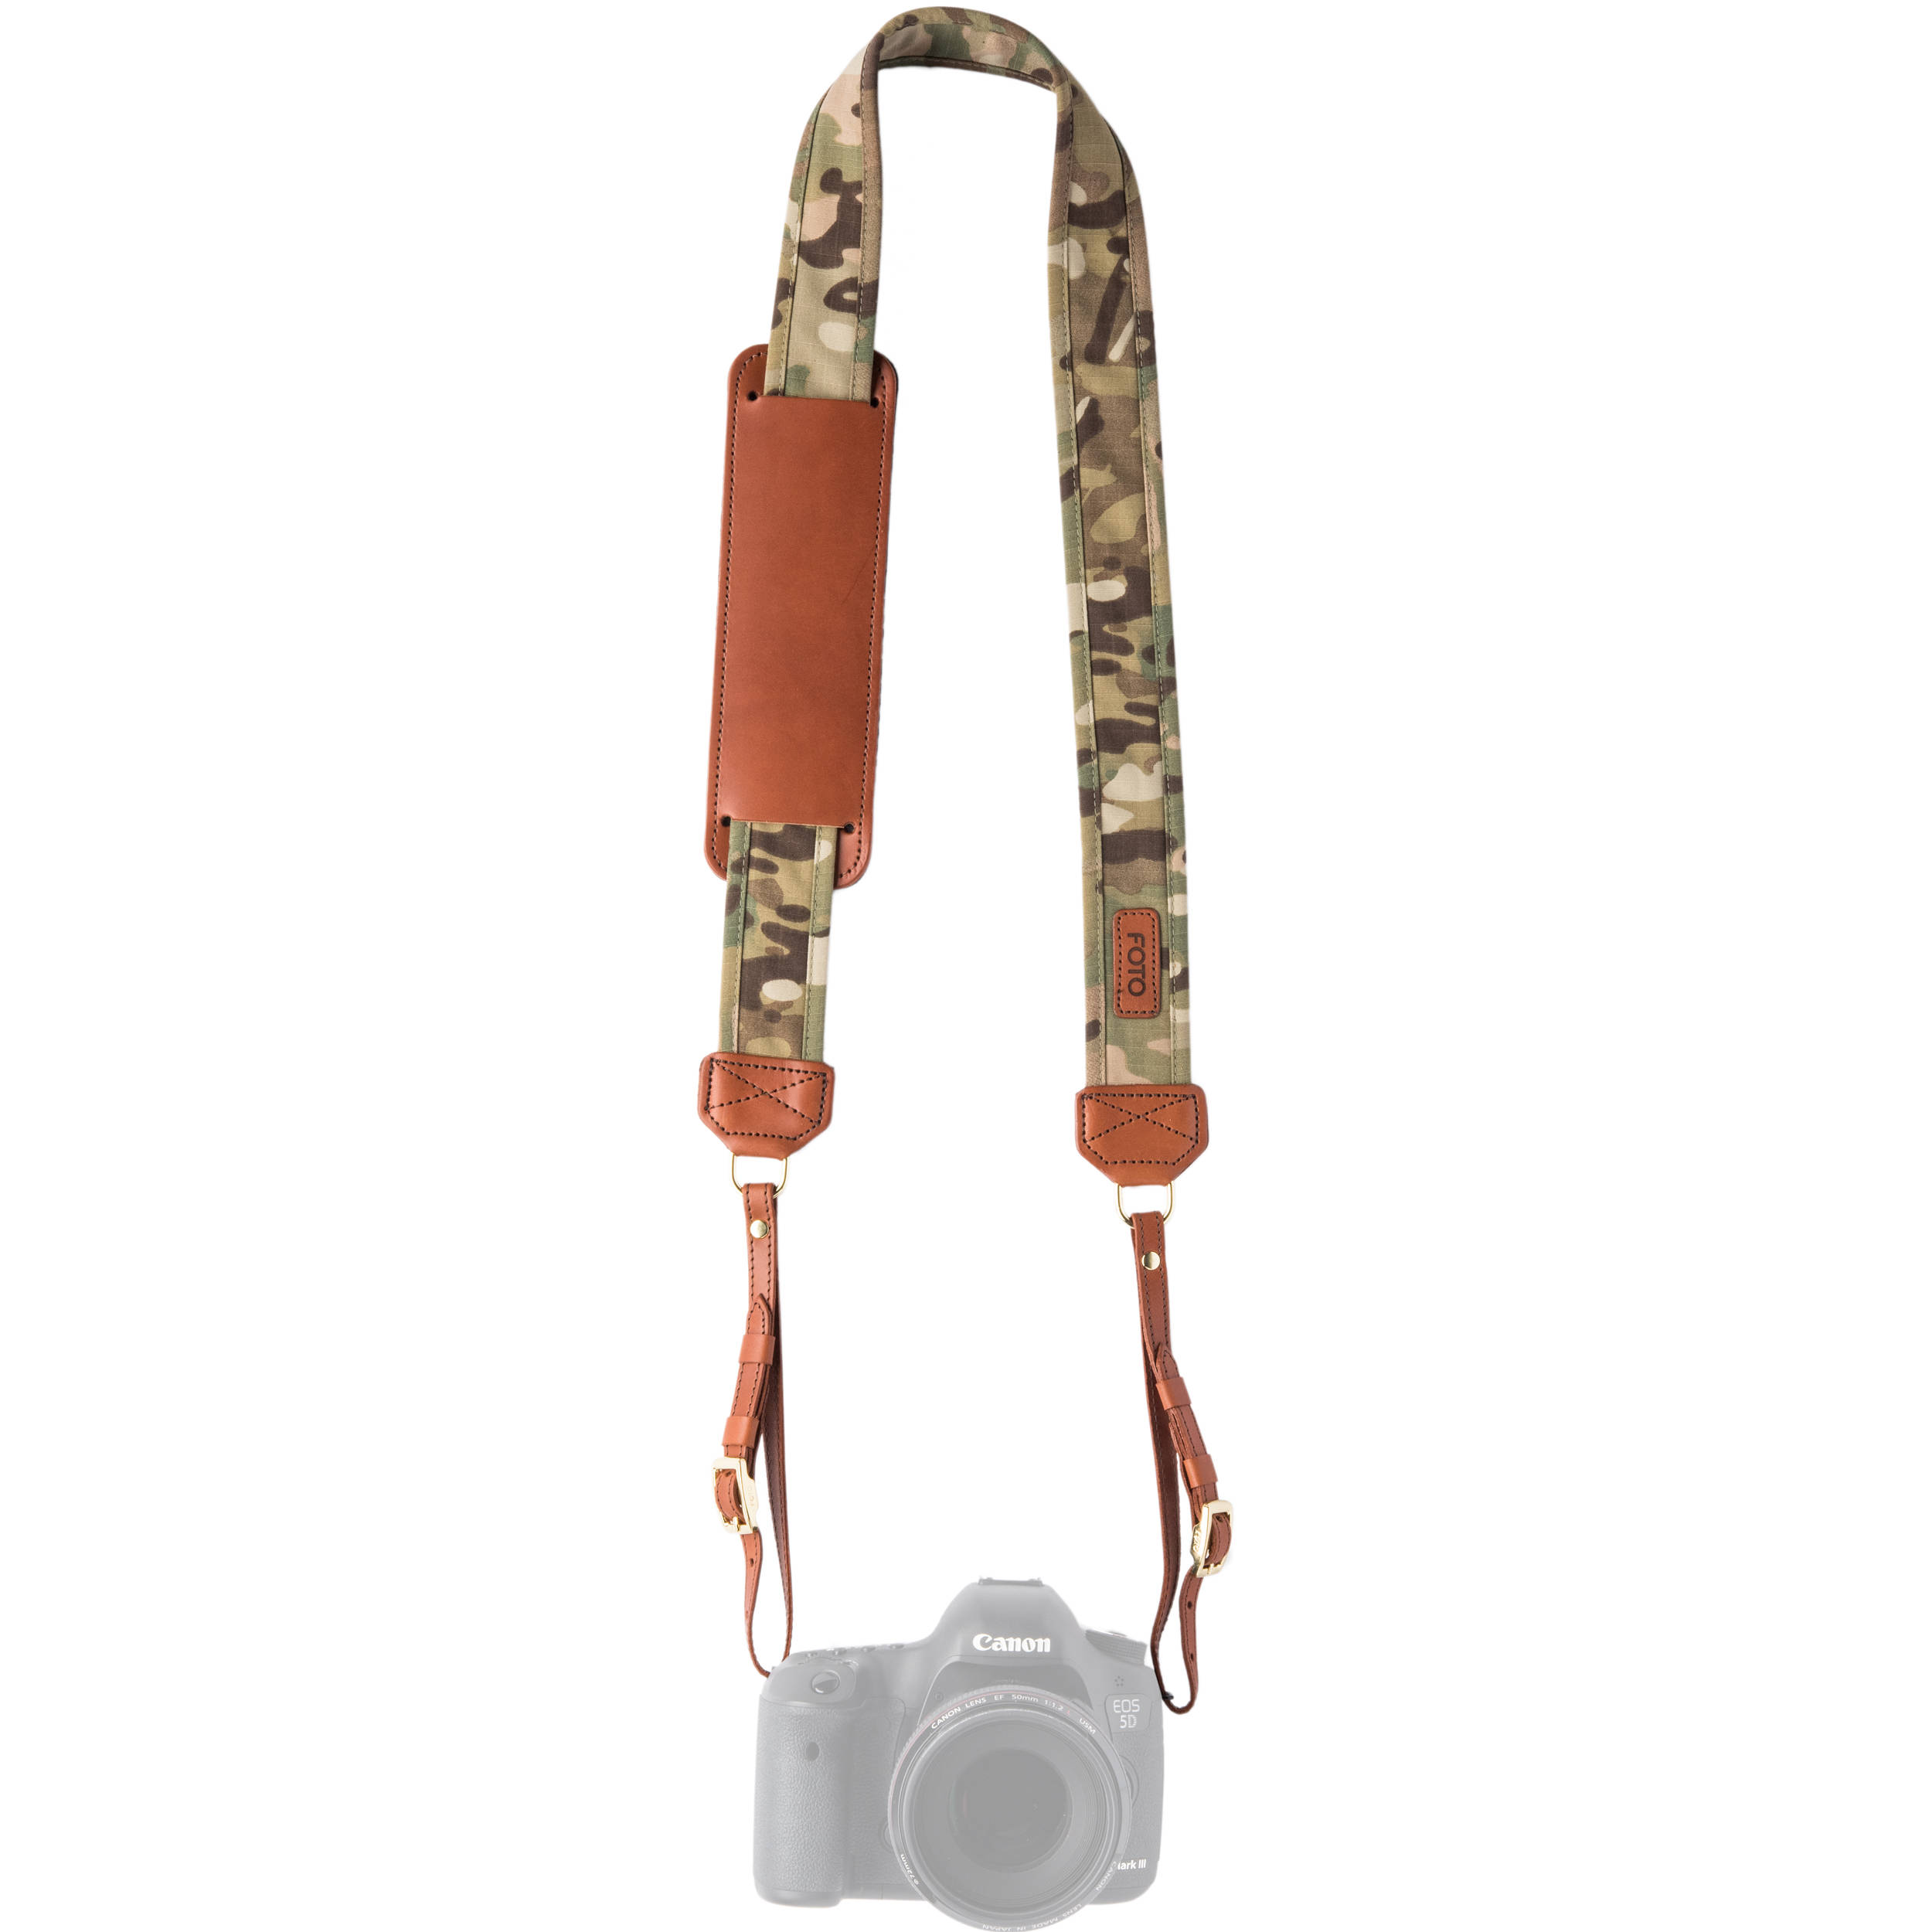 Fotostrap travis camera strap fototra b h photo video - Fotos trap ...